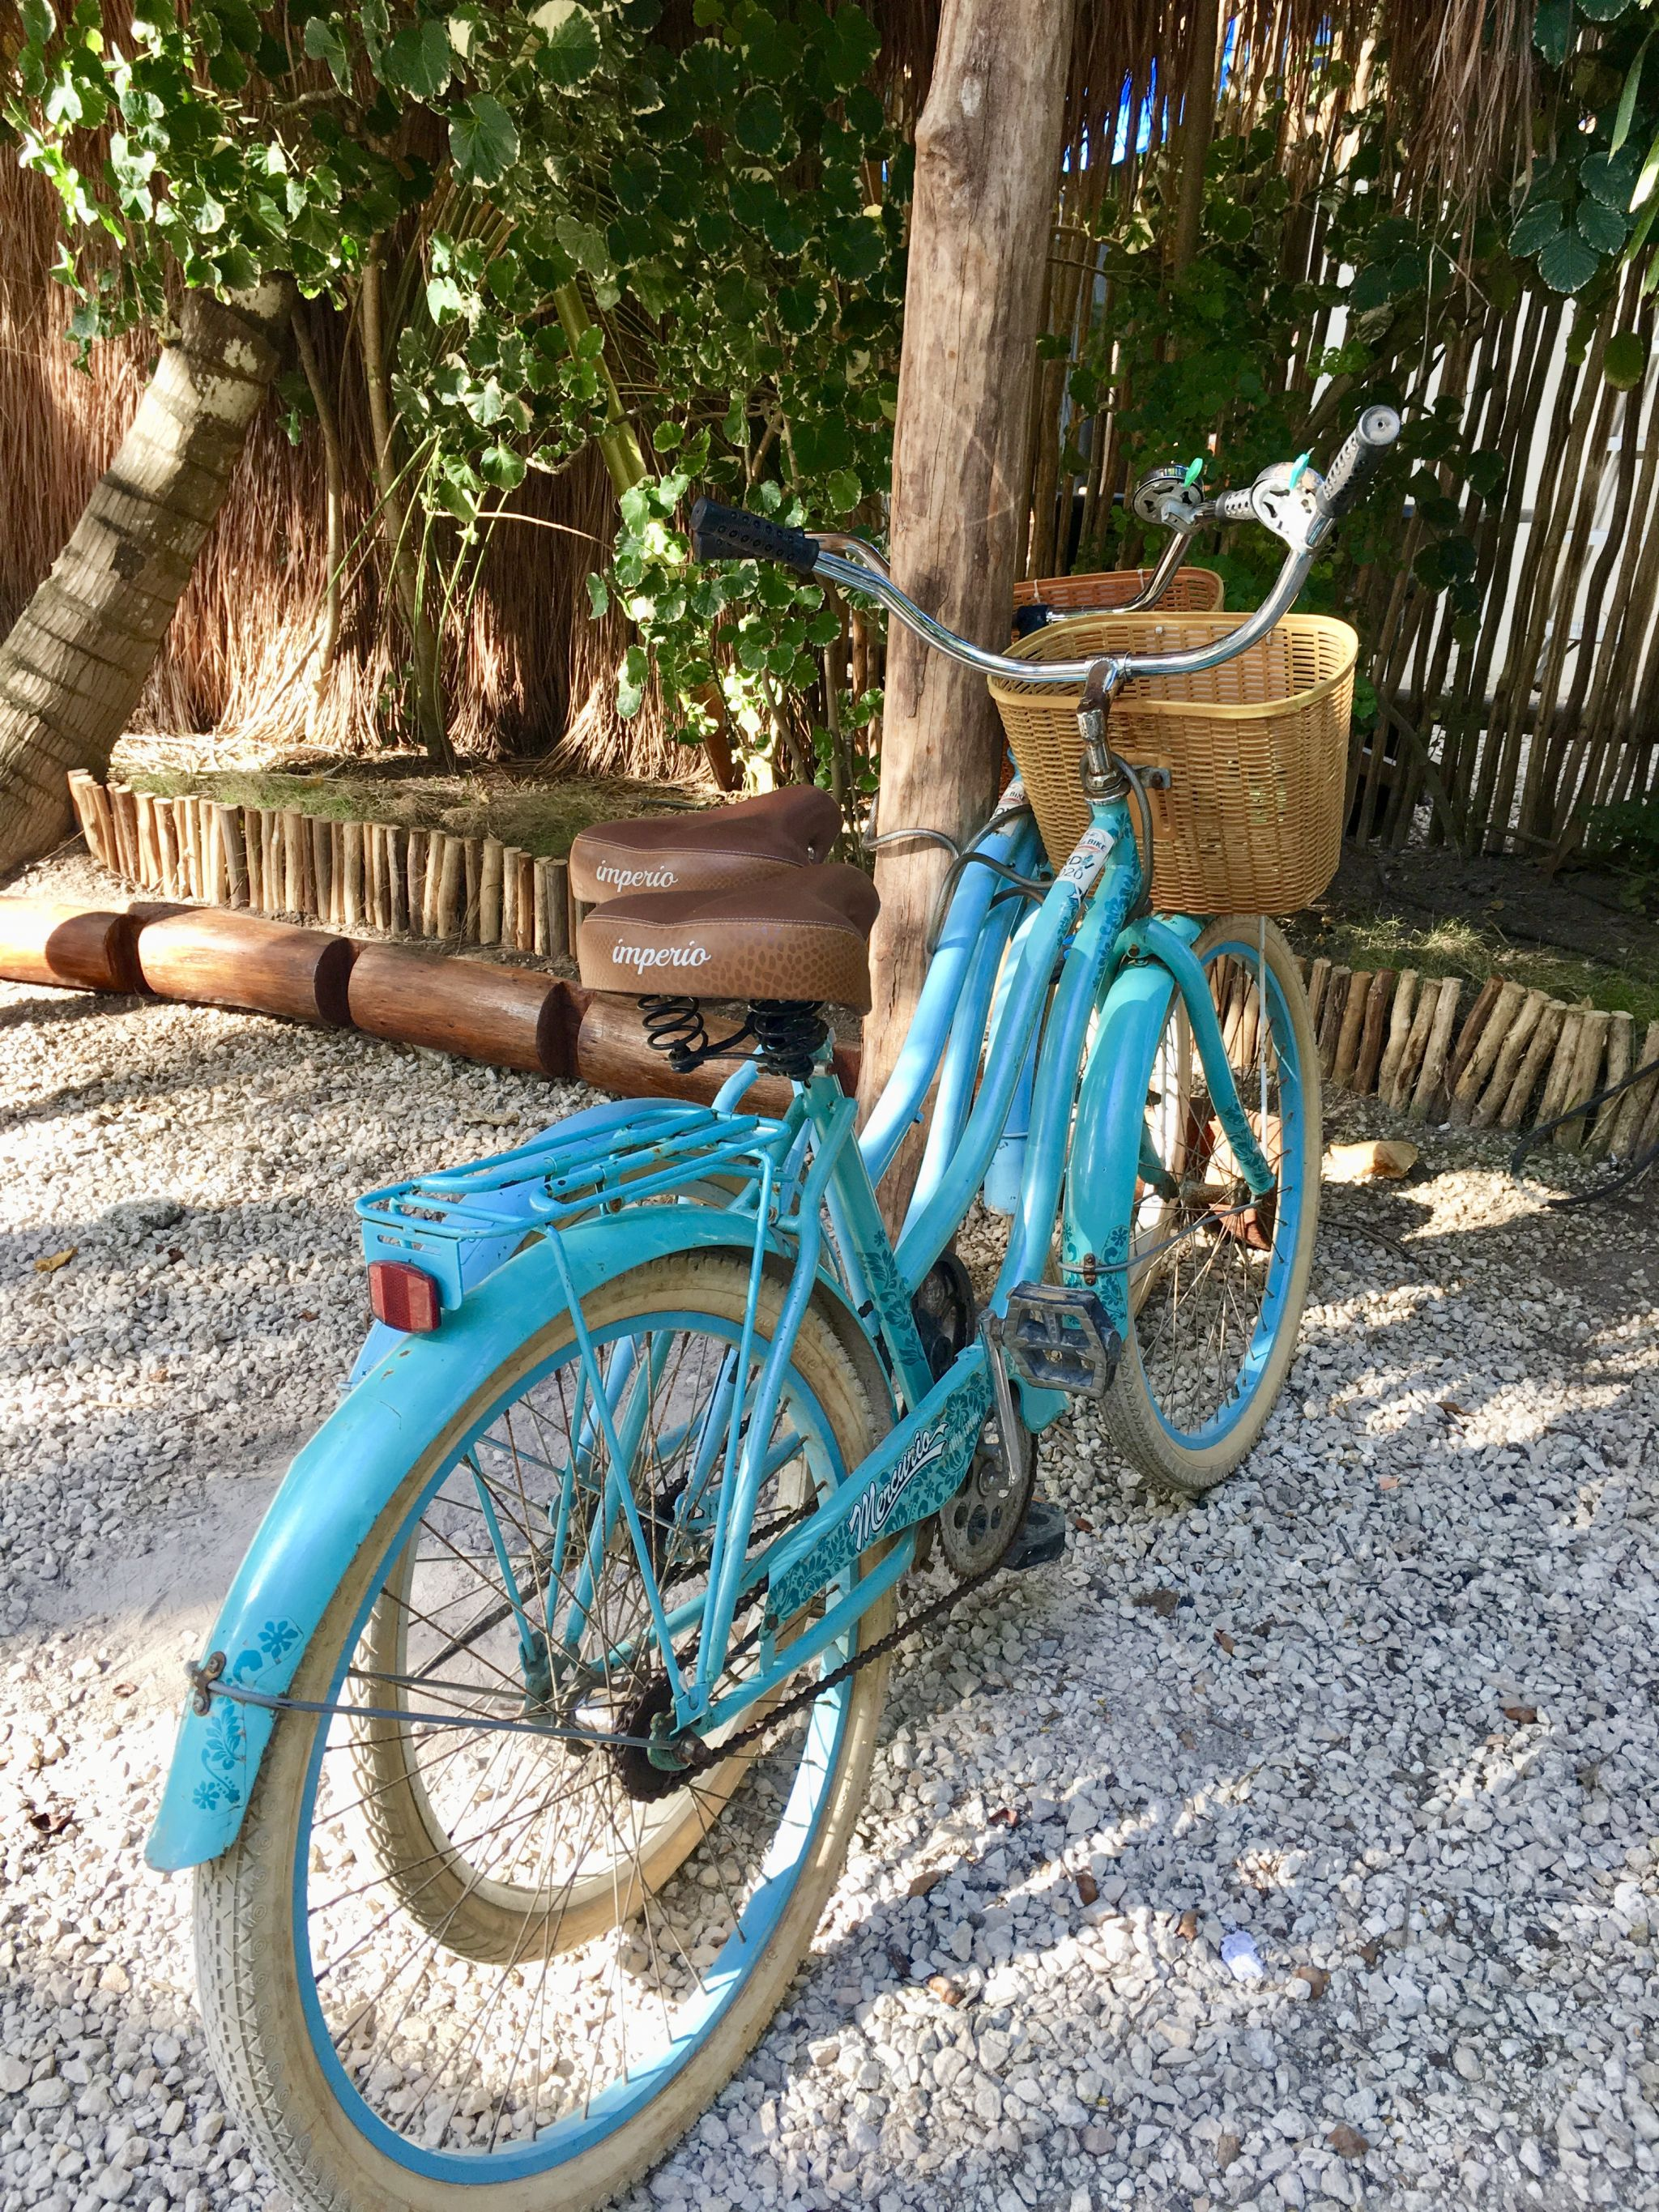 Bicycle is the transportation of choice for many in Tulum